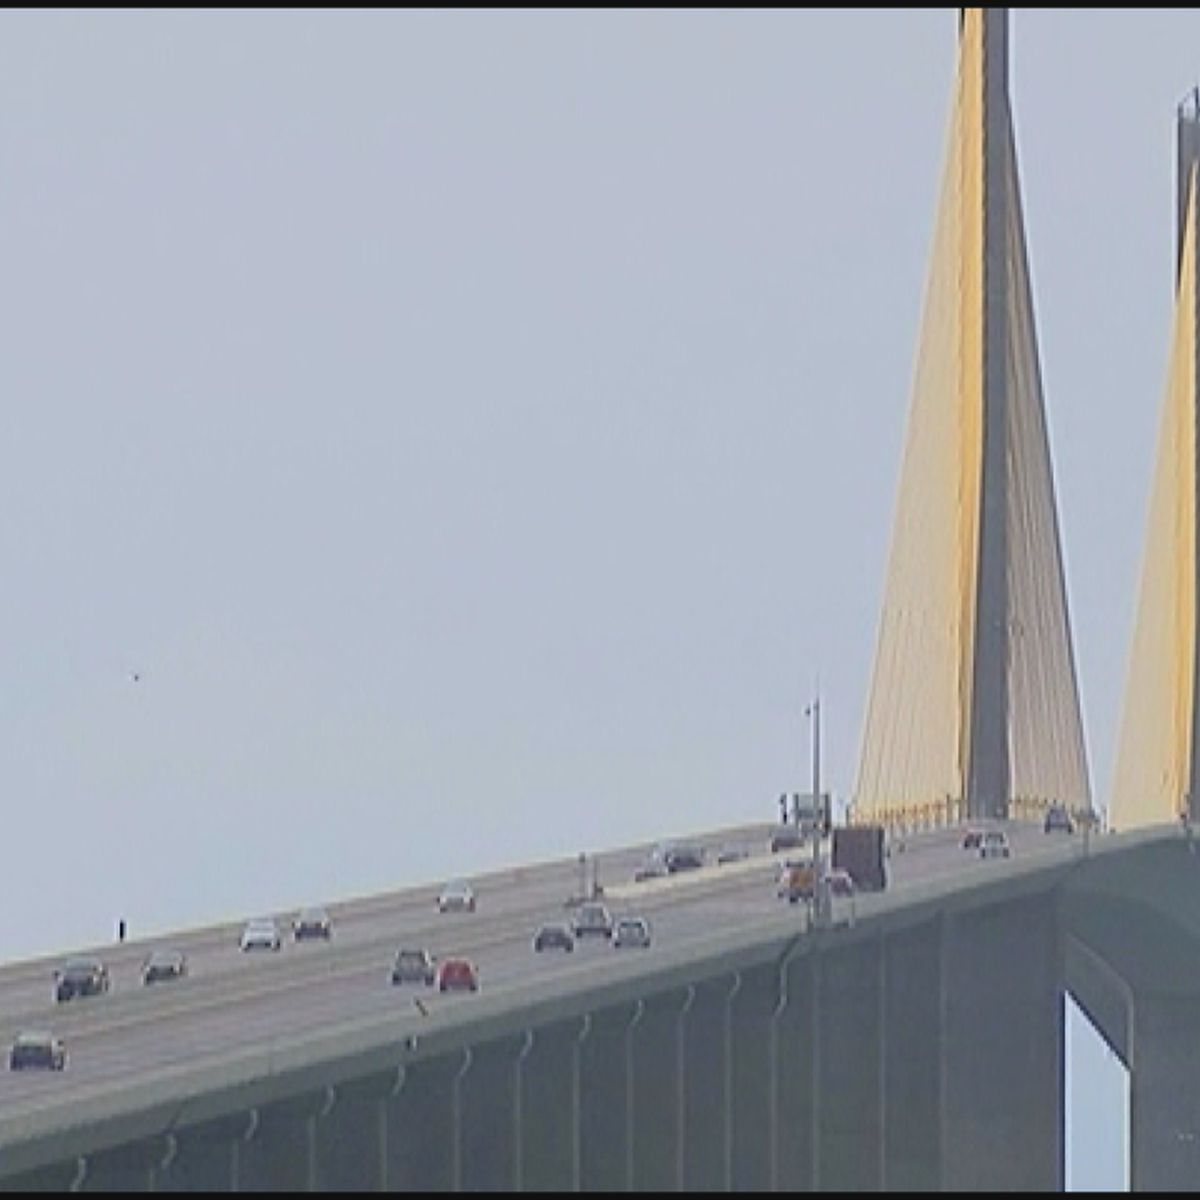 The reason why FDOT won't add netting to prevent suicides on Sunshine Skyway Bridge